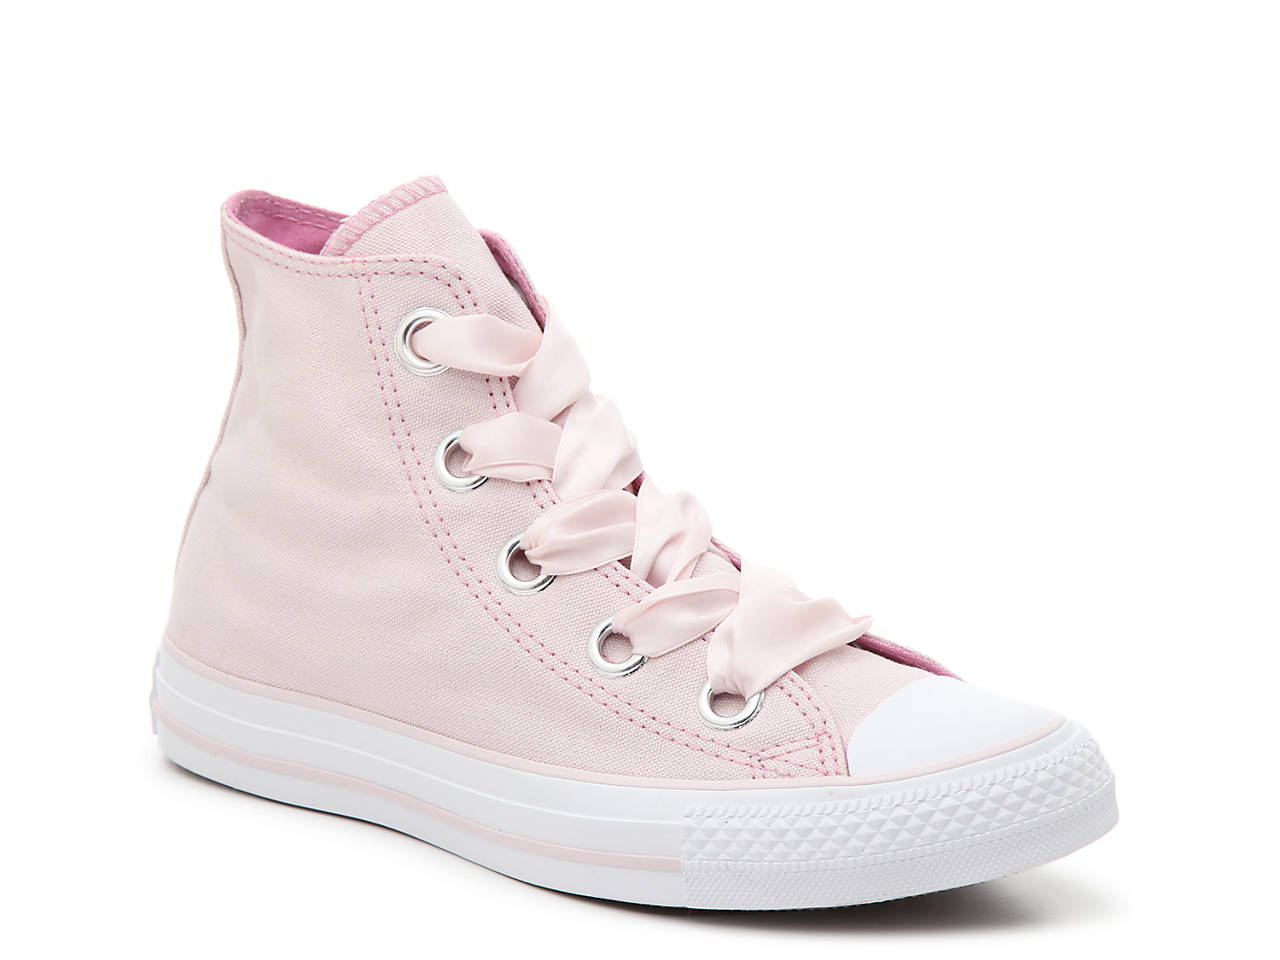 3bc37cead260 Converse Chuck Taylor All Star Ribbon High-Top Sneaker - Women s ...